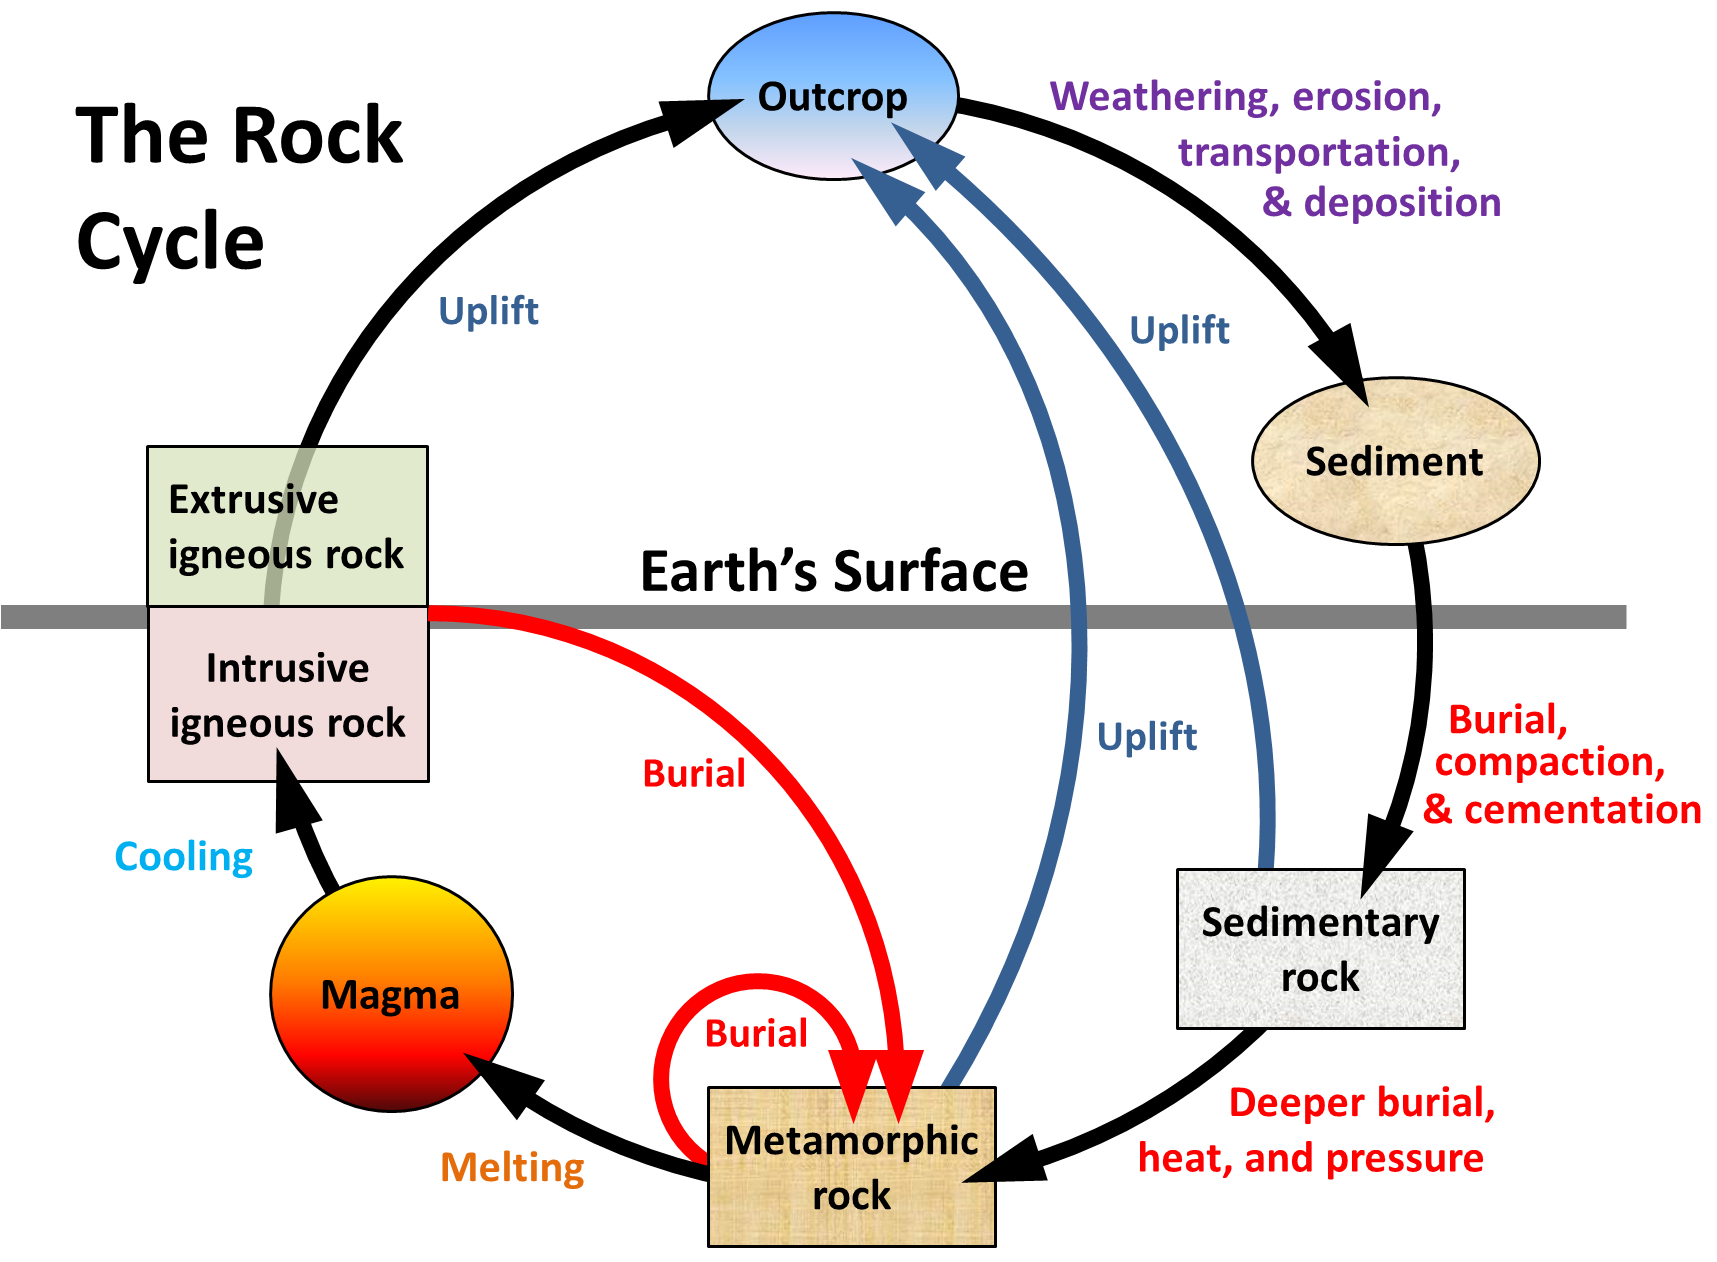 Figure 7.2 The rock cycle. The processes related to metamorphic rocks are at the bottom of the cycle. [SE ]